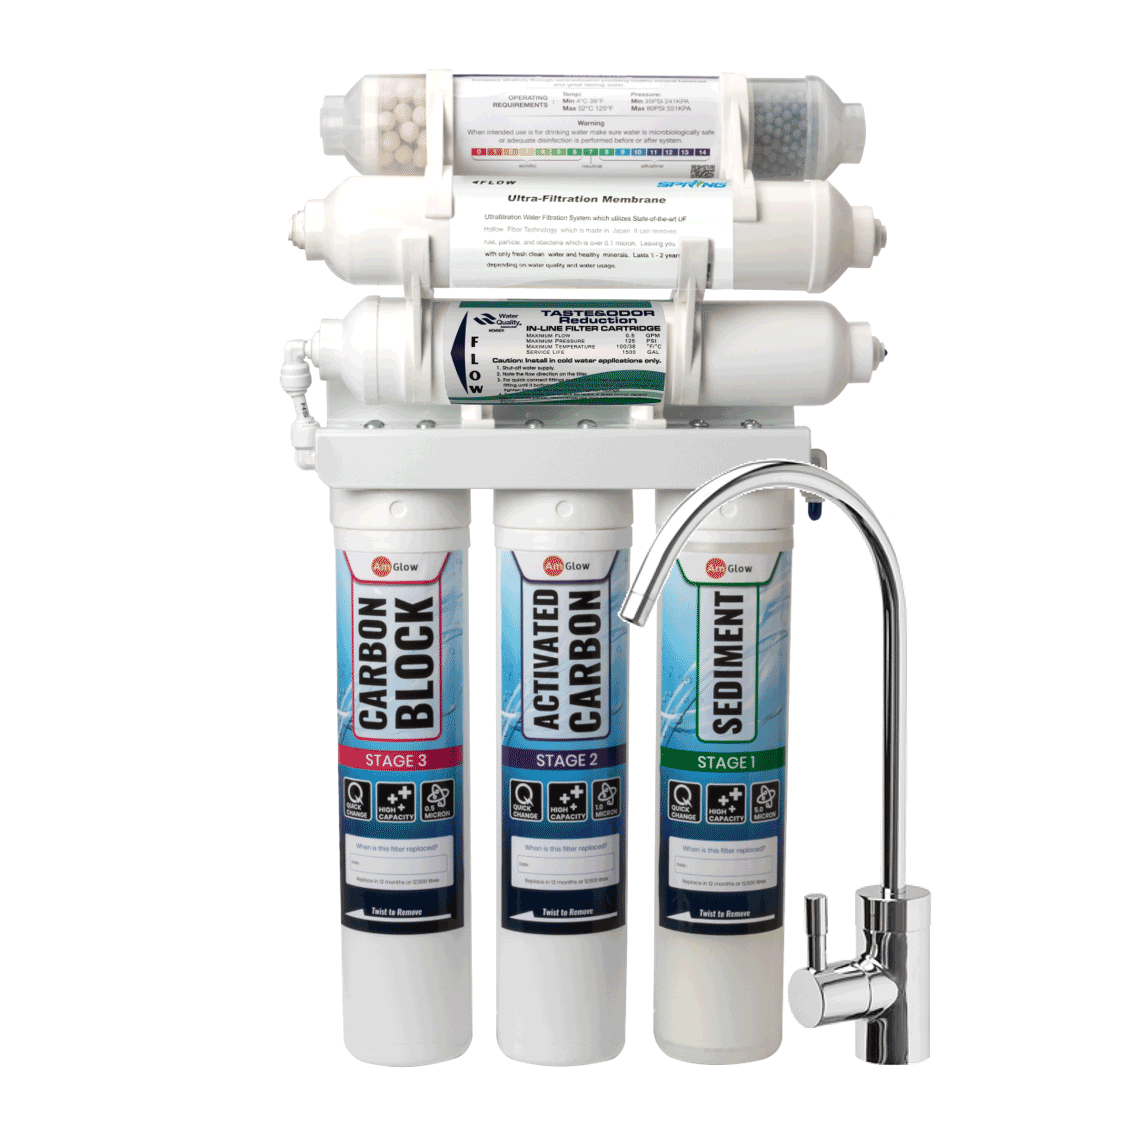 6 stage Undersink Water Filter System